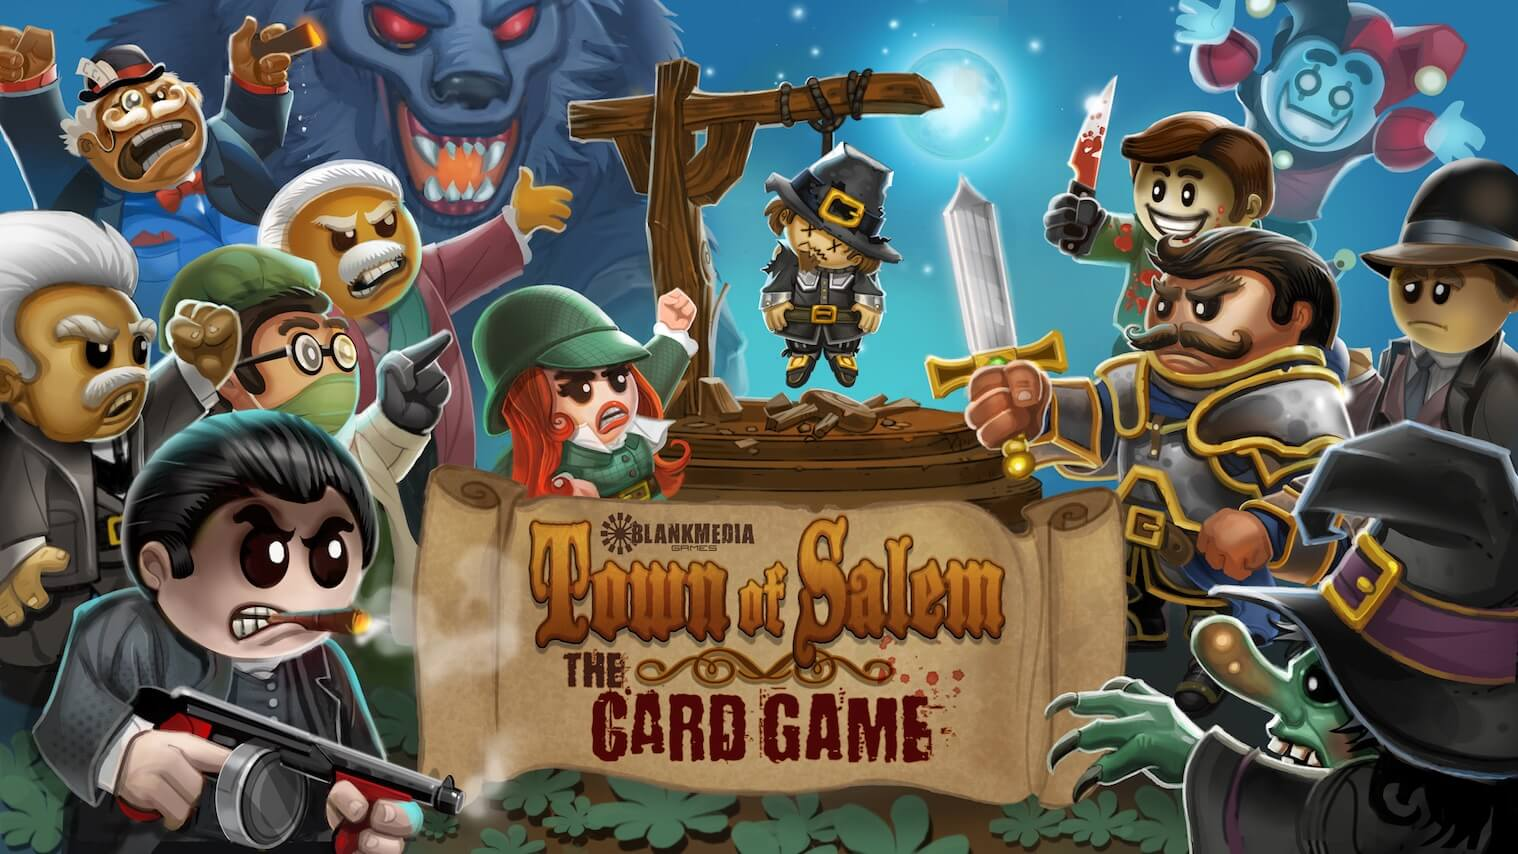 Town of Salem card game raises $100k in first 24hrs on Kickstarter